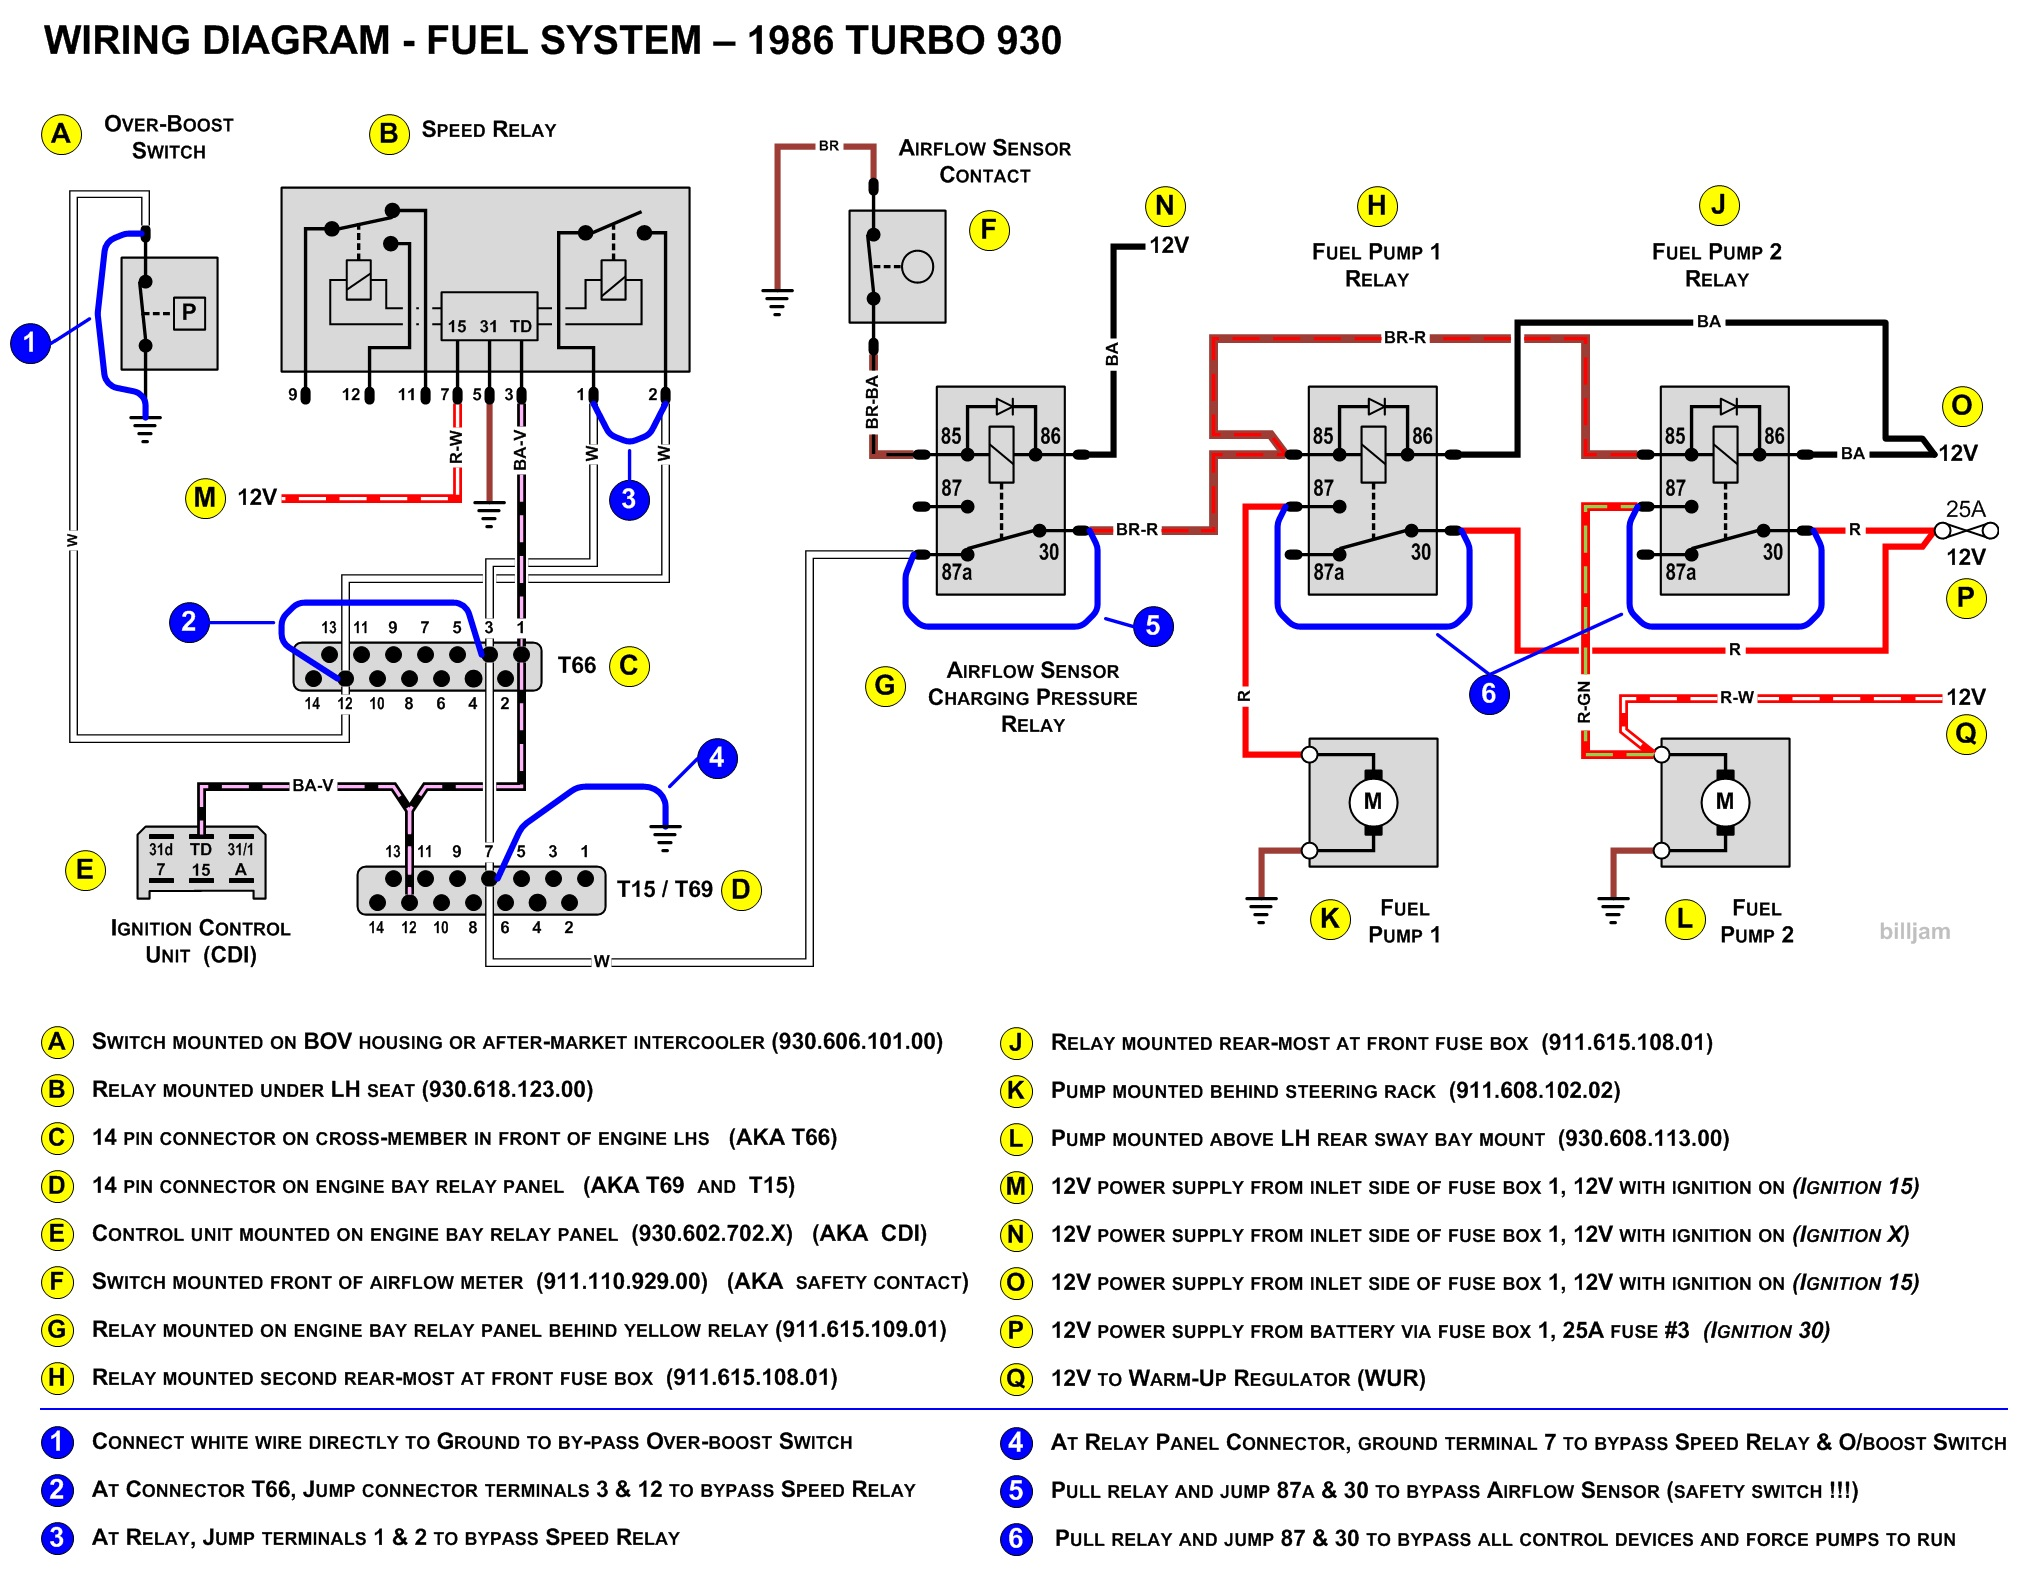 Mercedes Pms Wiring Diagram Circuit Symbols C320 Engine Center U2022 Rh Bruio Co 1974 Benz Diagrams Color Codes